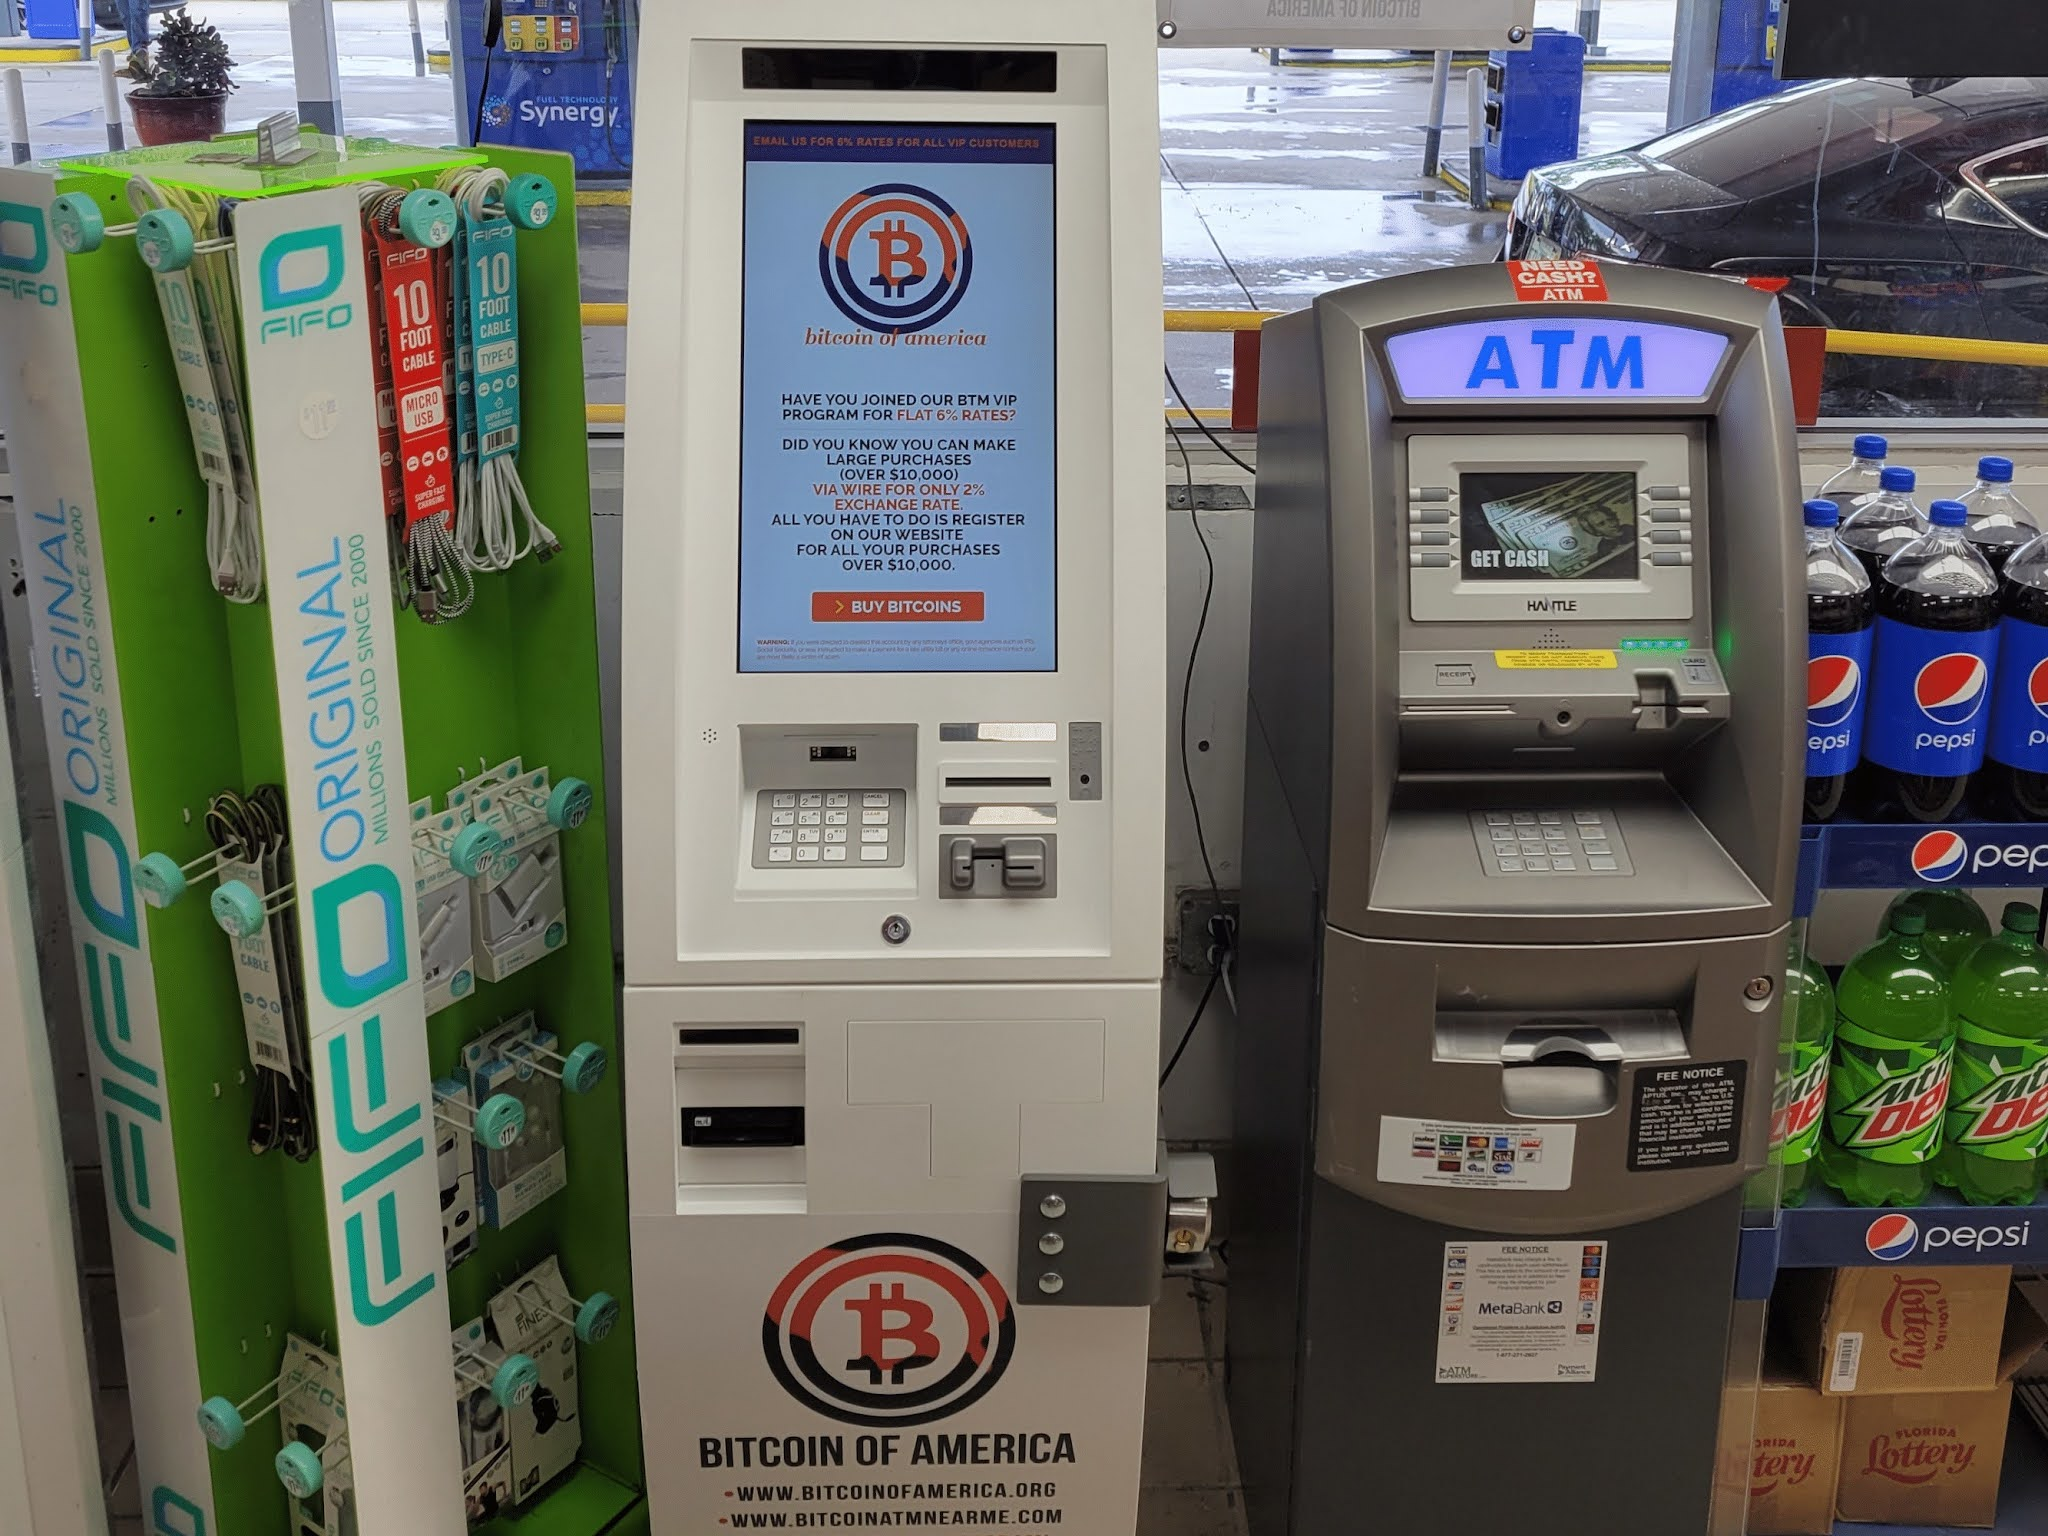 Bitcoin of America Adds Ethereum to their Bitcoin ATMs